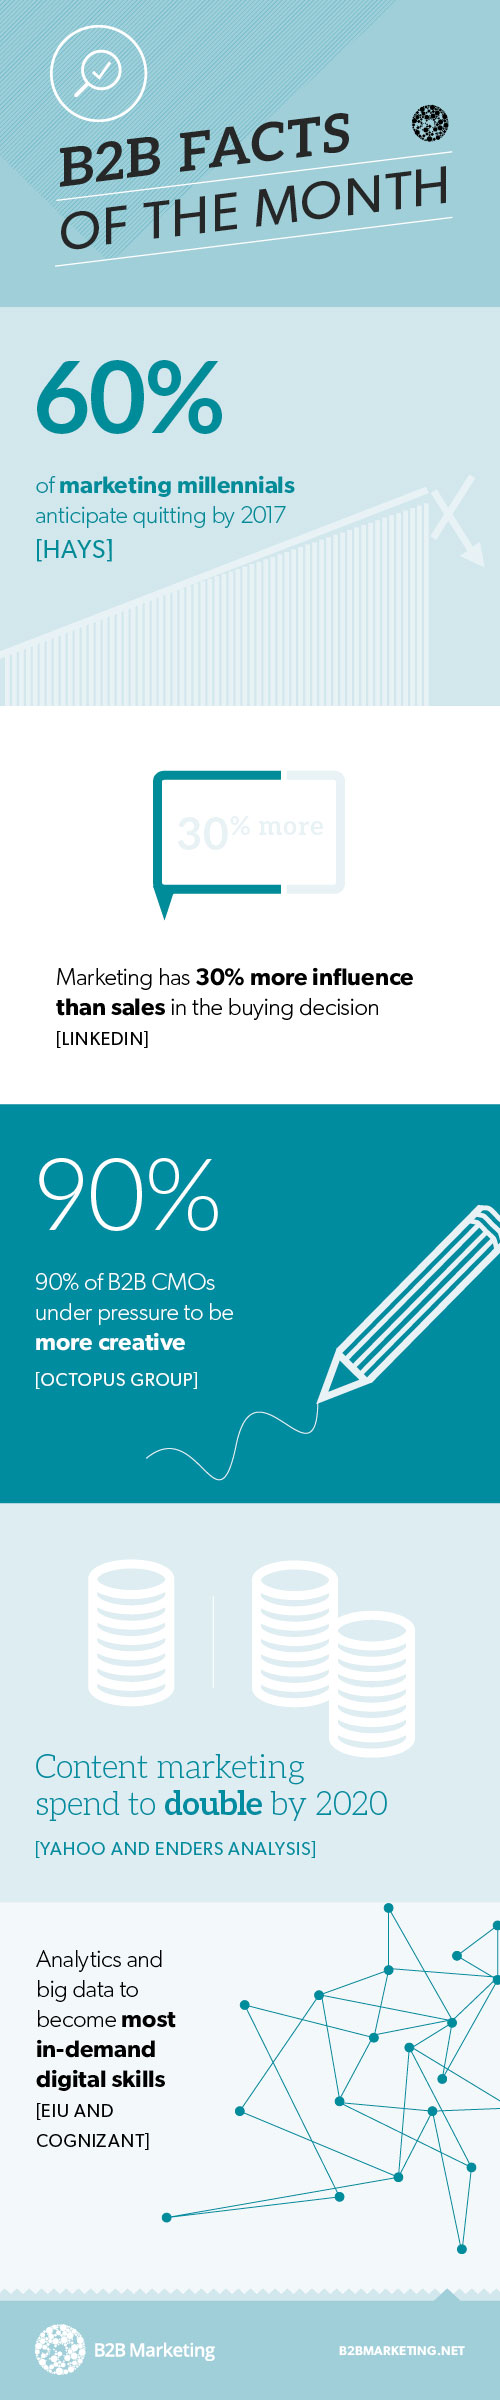 B2B Marketing facts of the month infographic